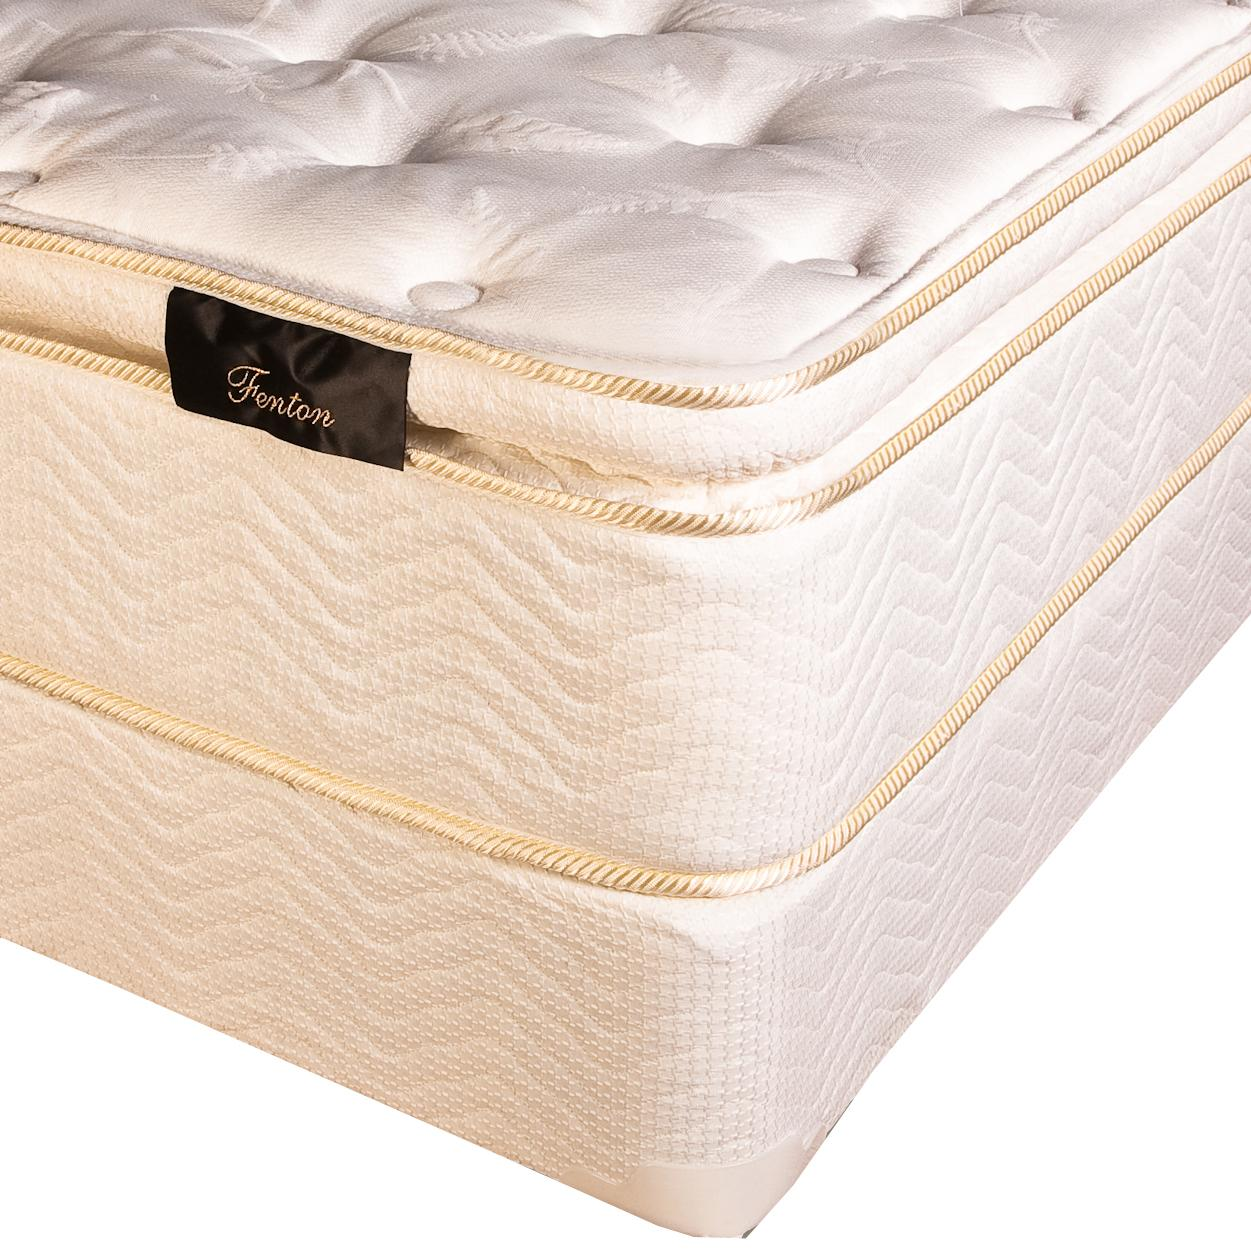 Southerland Twin Fenton Pillow Top Mattress Set by Southerland Bedding Co. at Wilcox Furniture